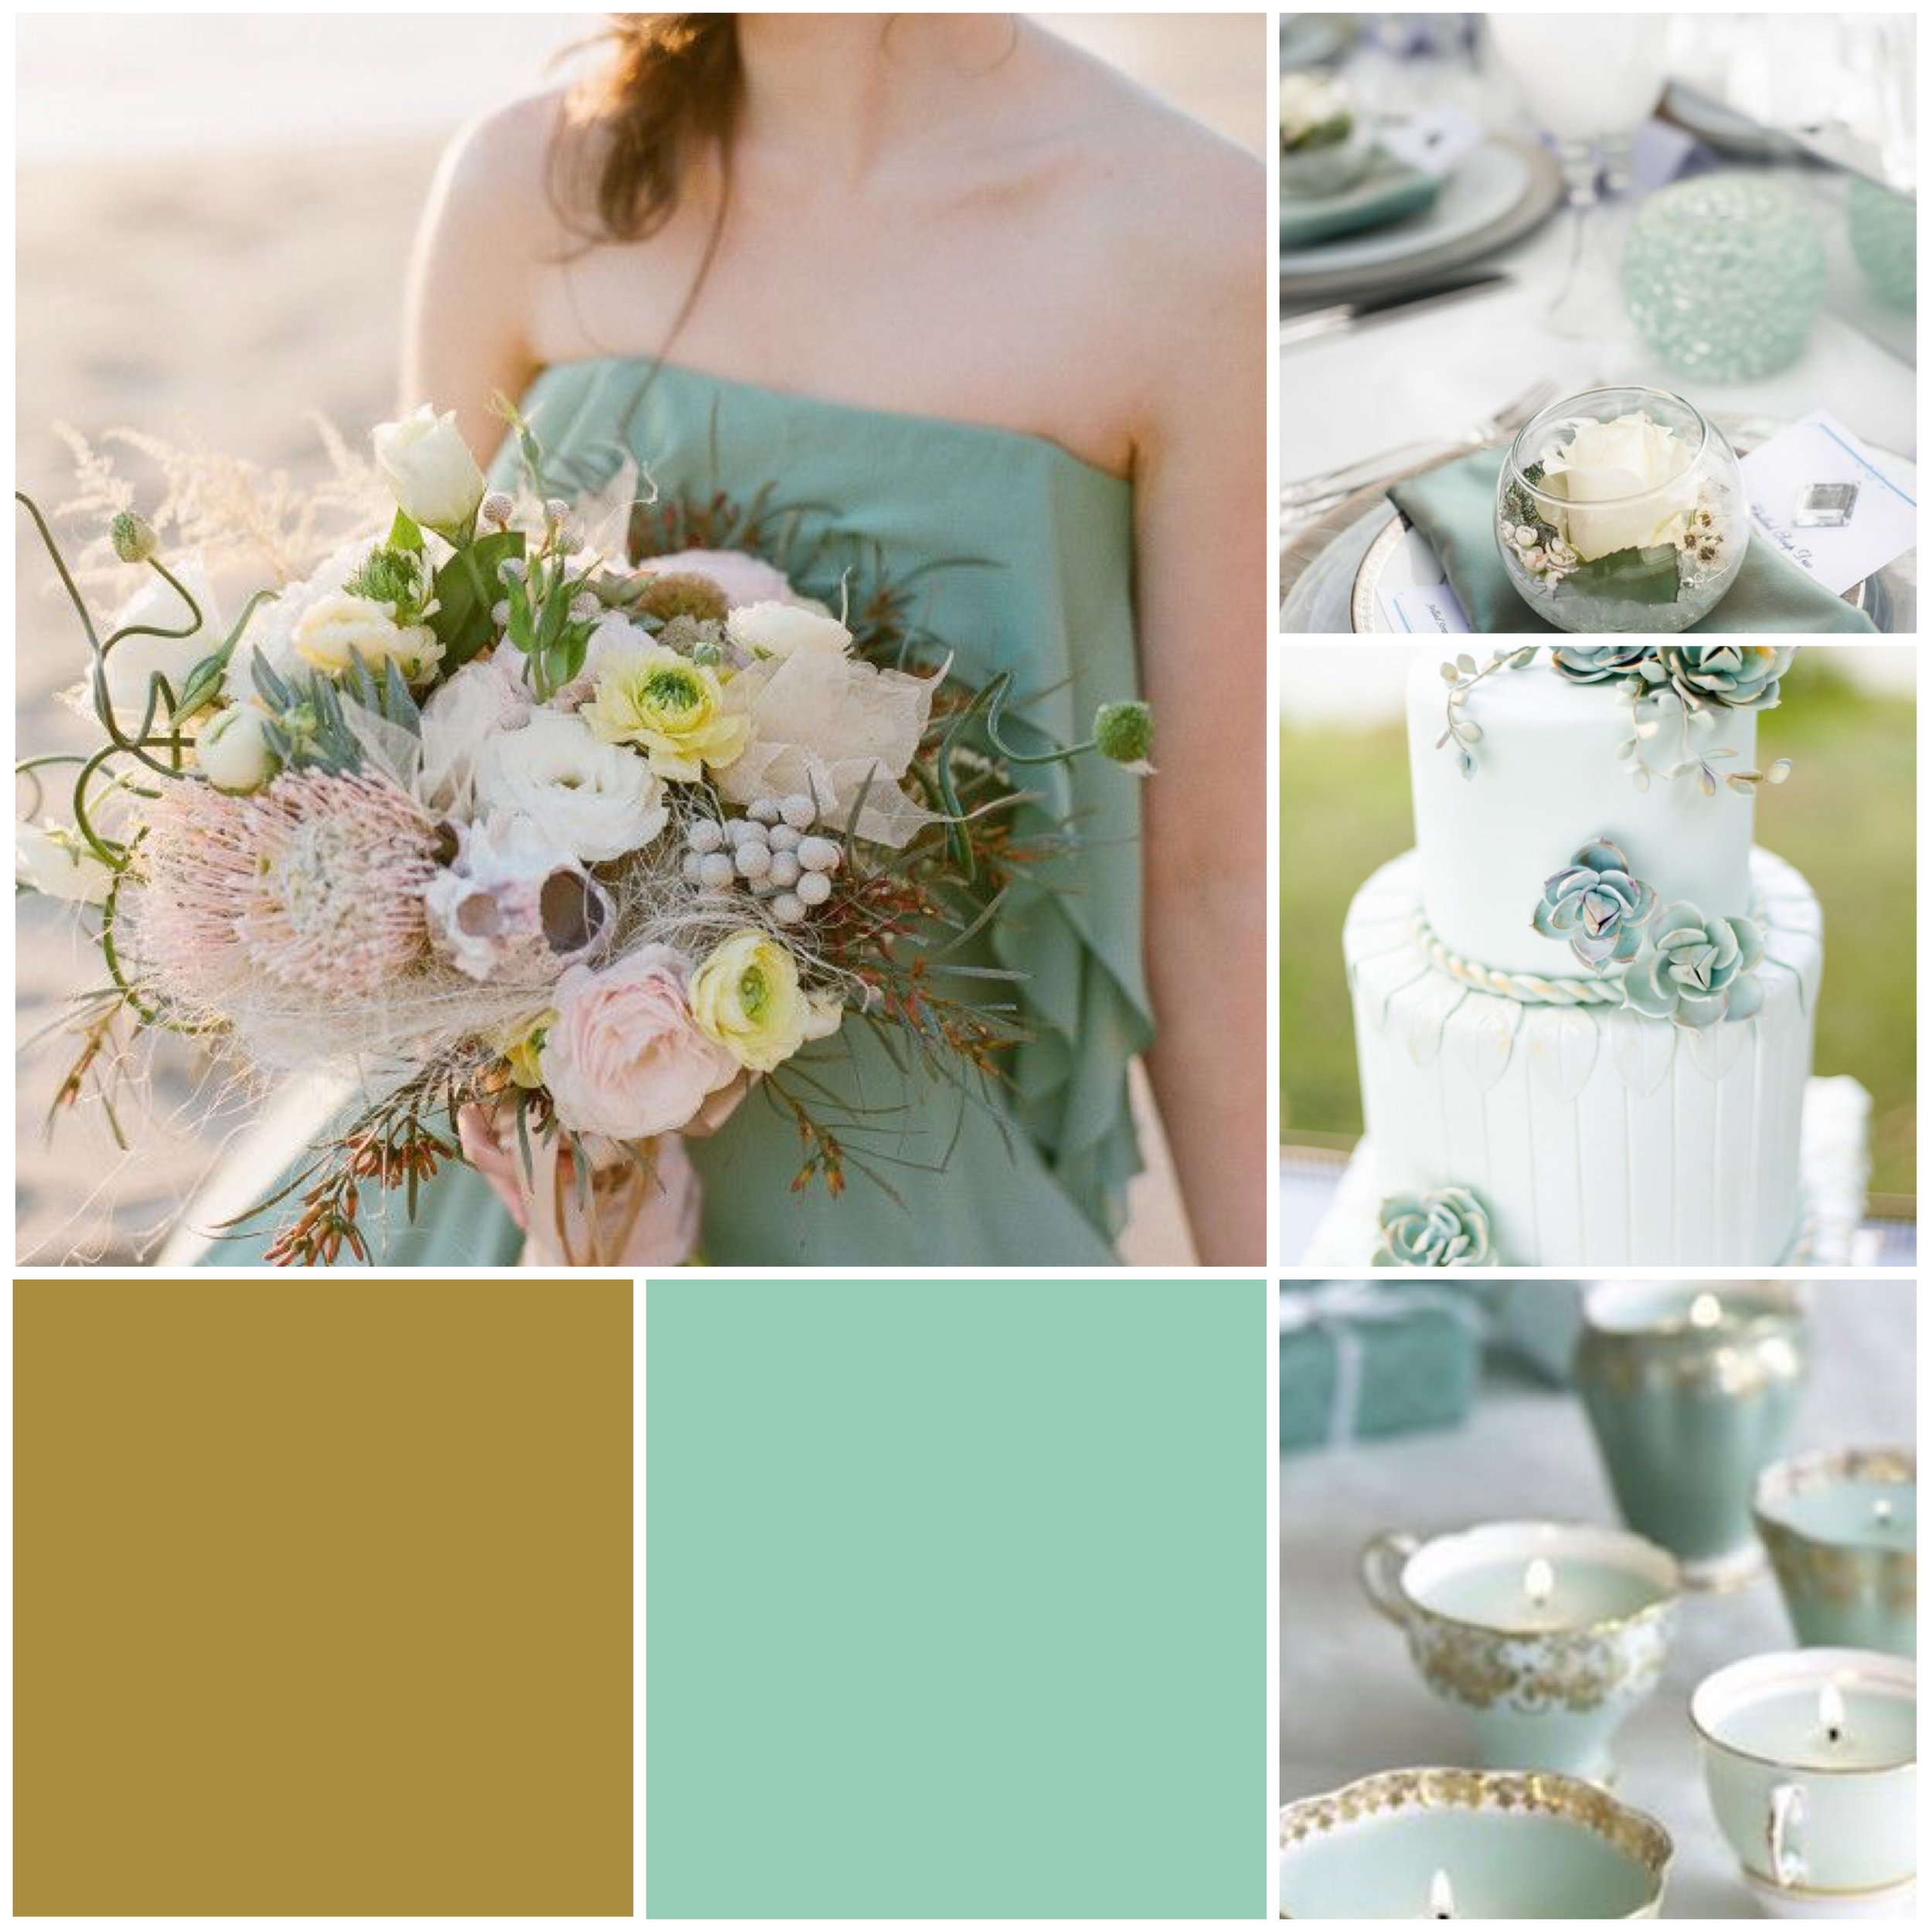 Grayed Jade & Gold Moodboard for your wedding inspiration.